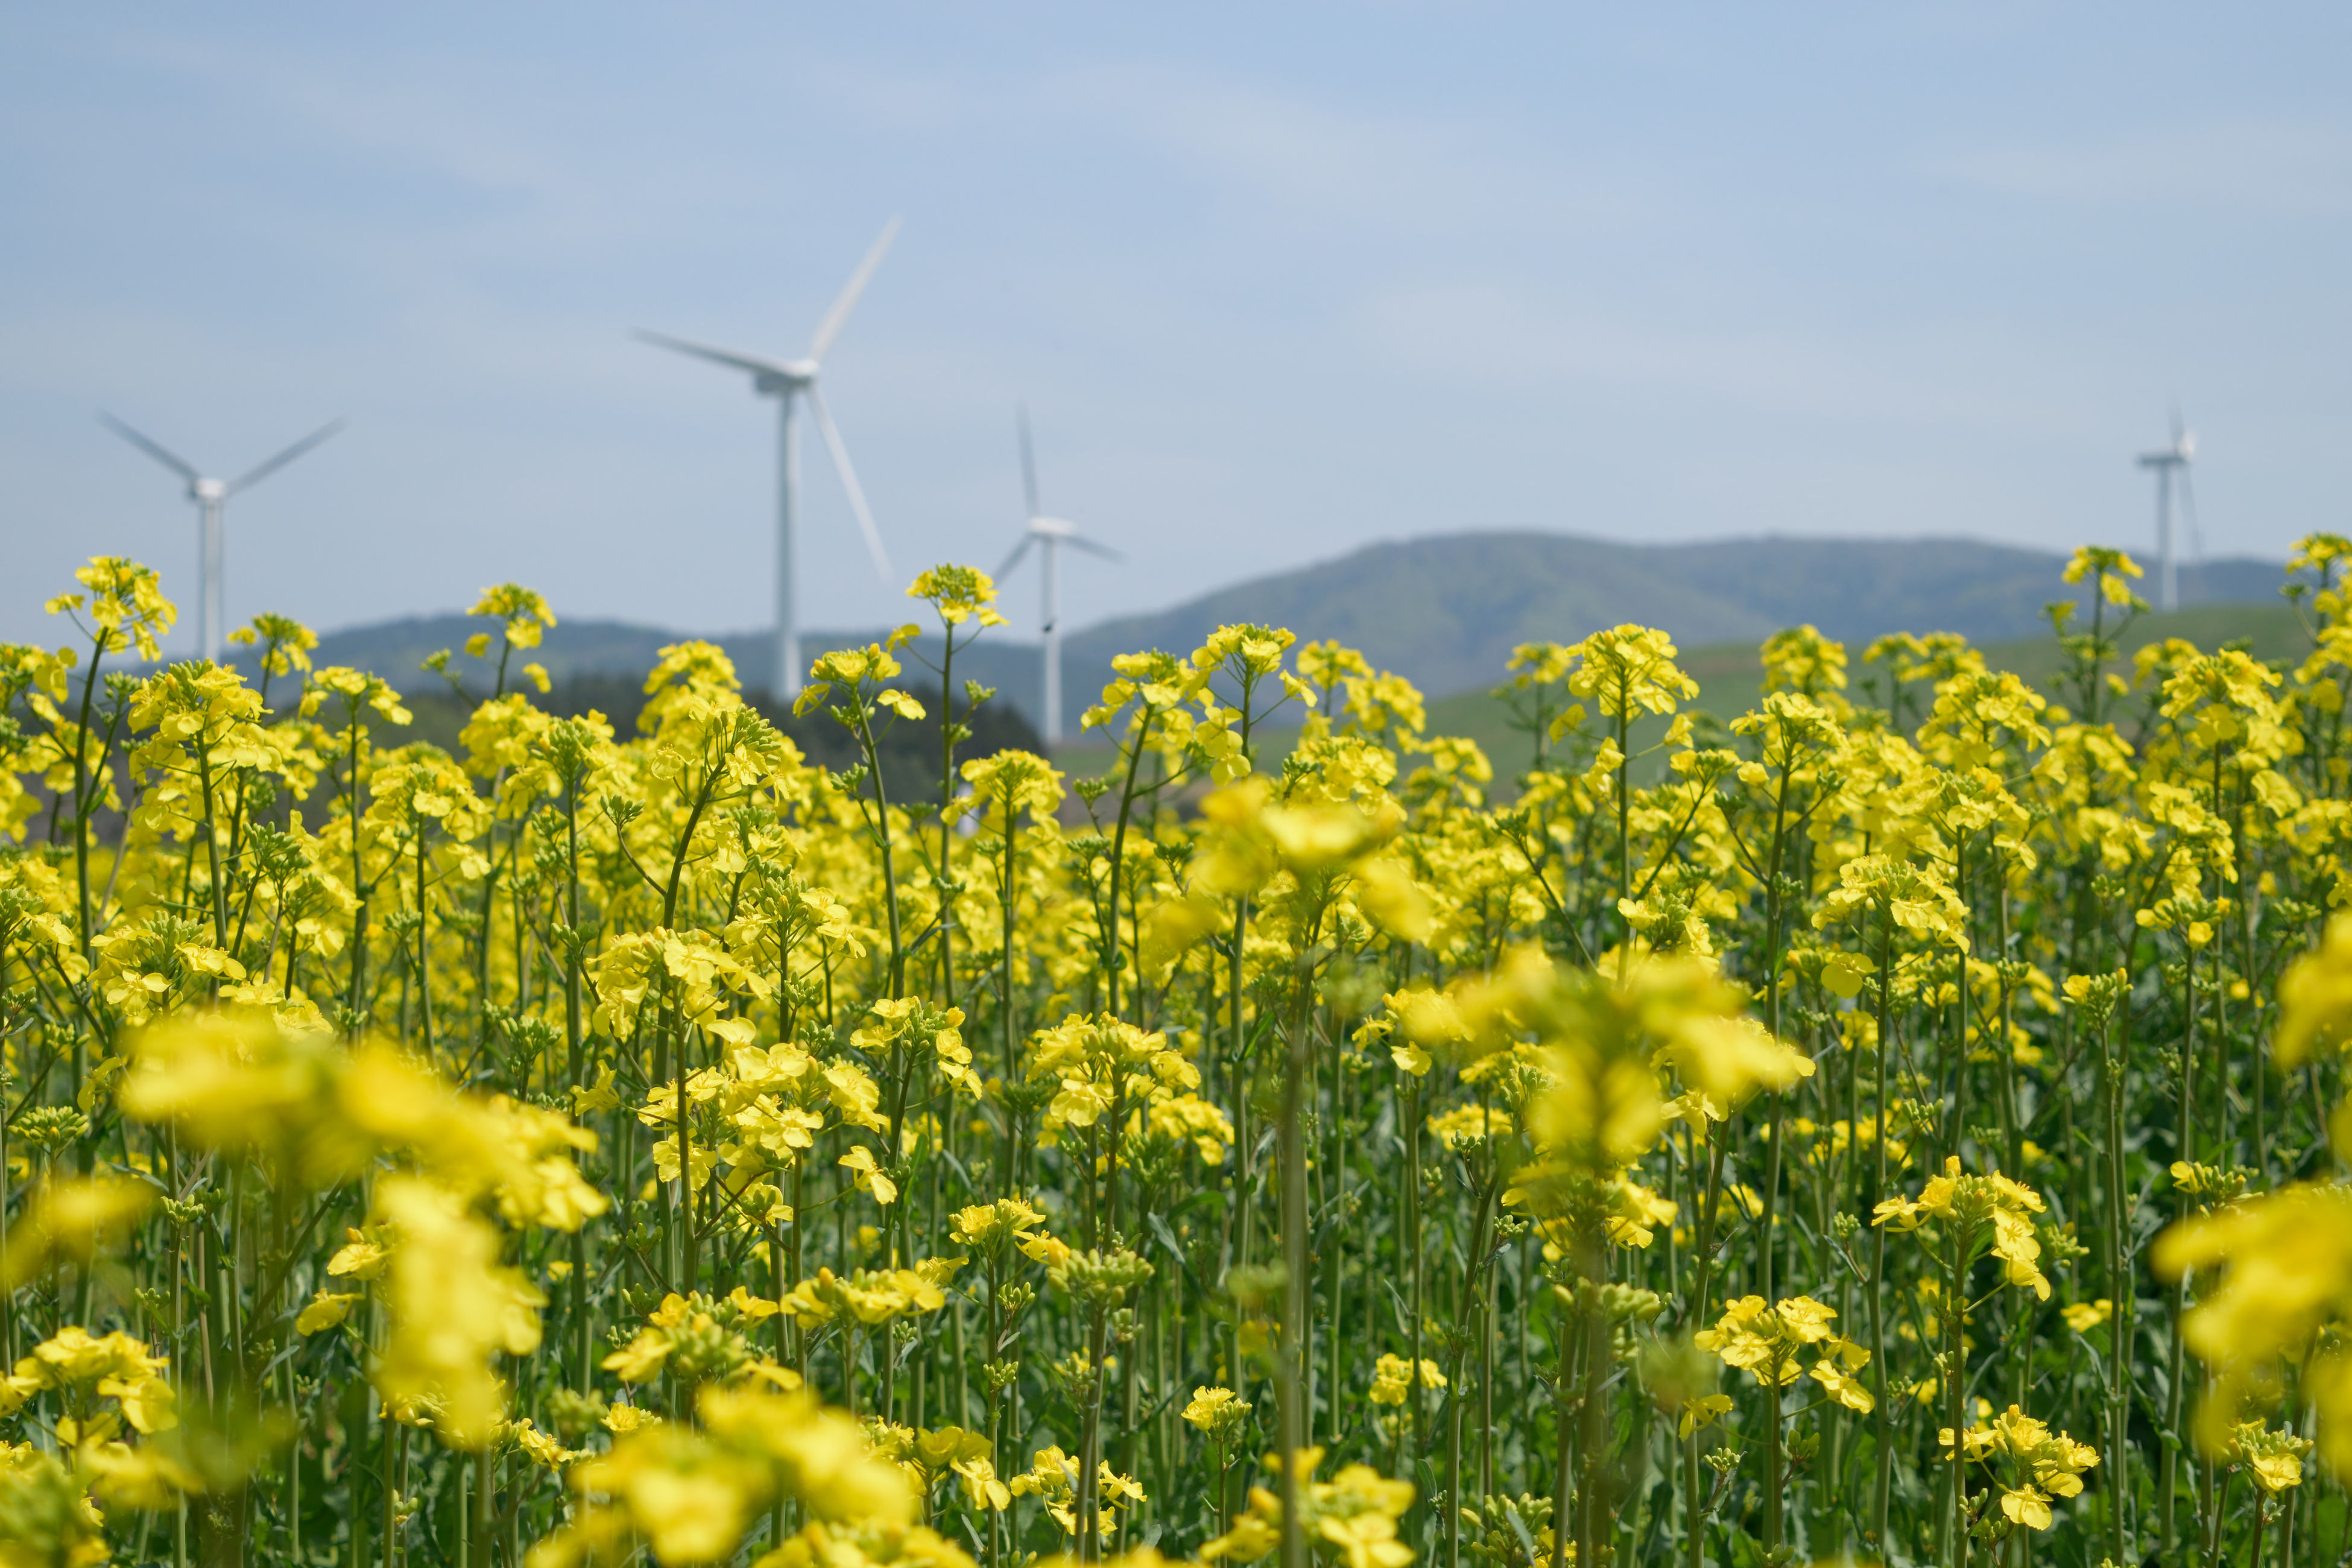 flower, yellow, field, growth, rural scene, agriculture, freshness, beauty in nature, plant, landscape, nature, farm, fragility, sky, wind power, crop, oilseed rape, windmill, alternative energy, day